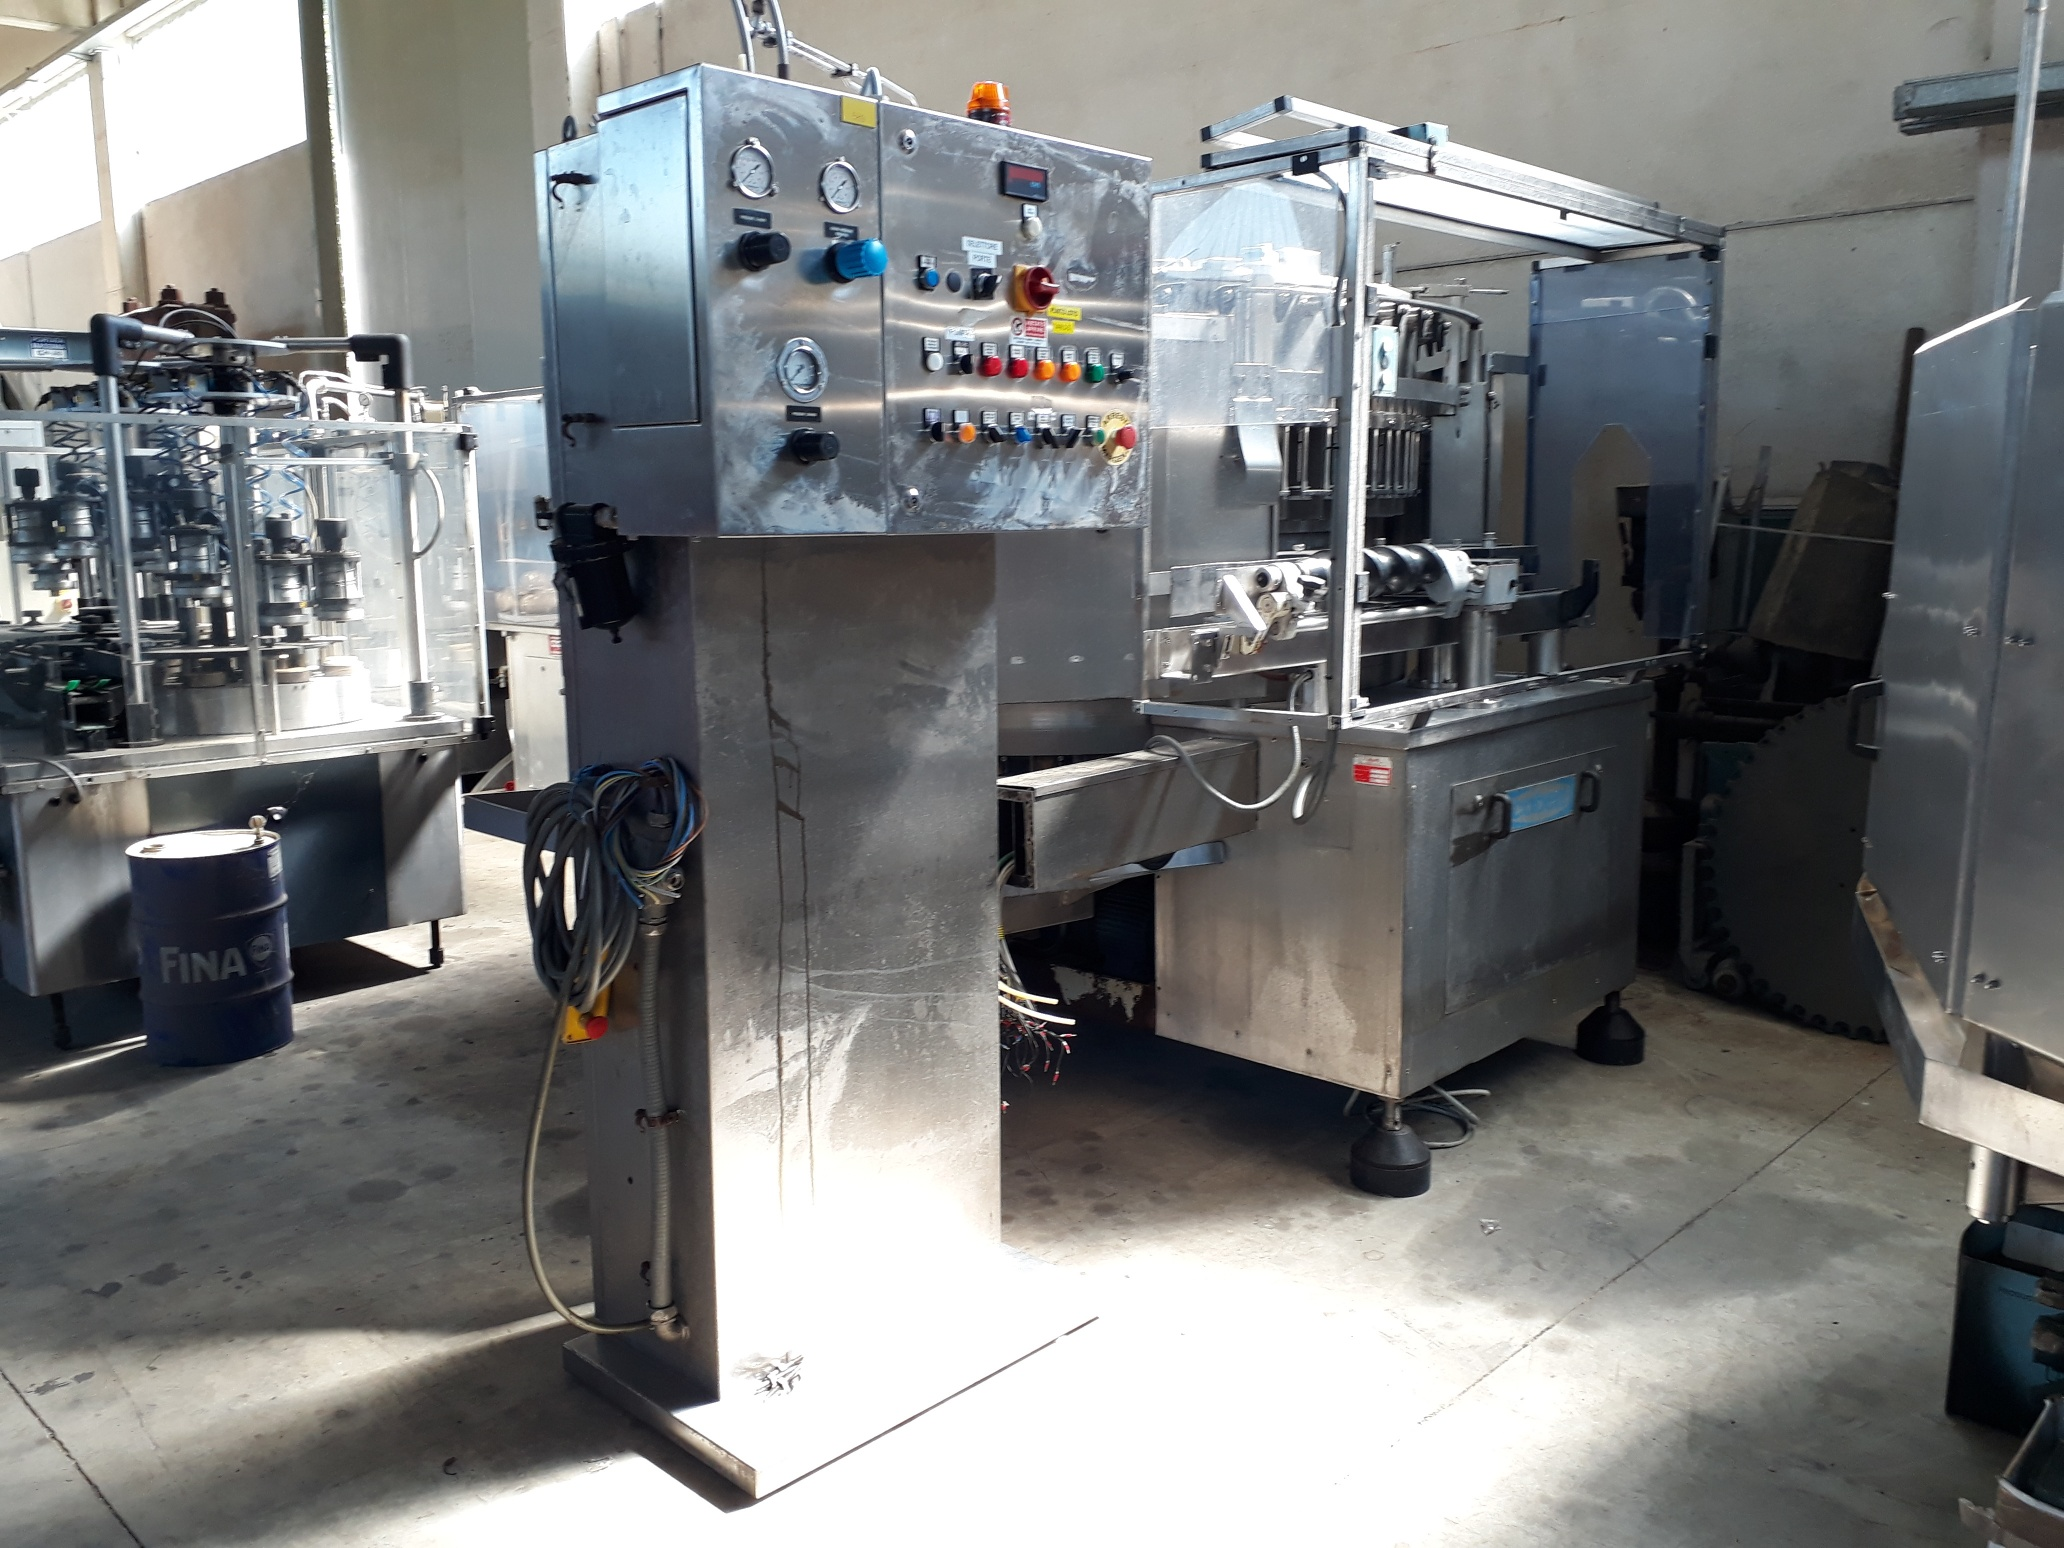 ISOBARIC FILLING MACHINE COBERT BERTOLASO WITH 48 VALVES, MODEL SUPREMA YEAR 1991, SECOND-HAND MACHINE.